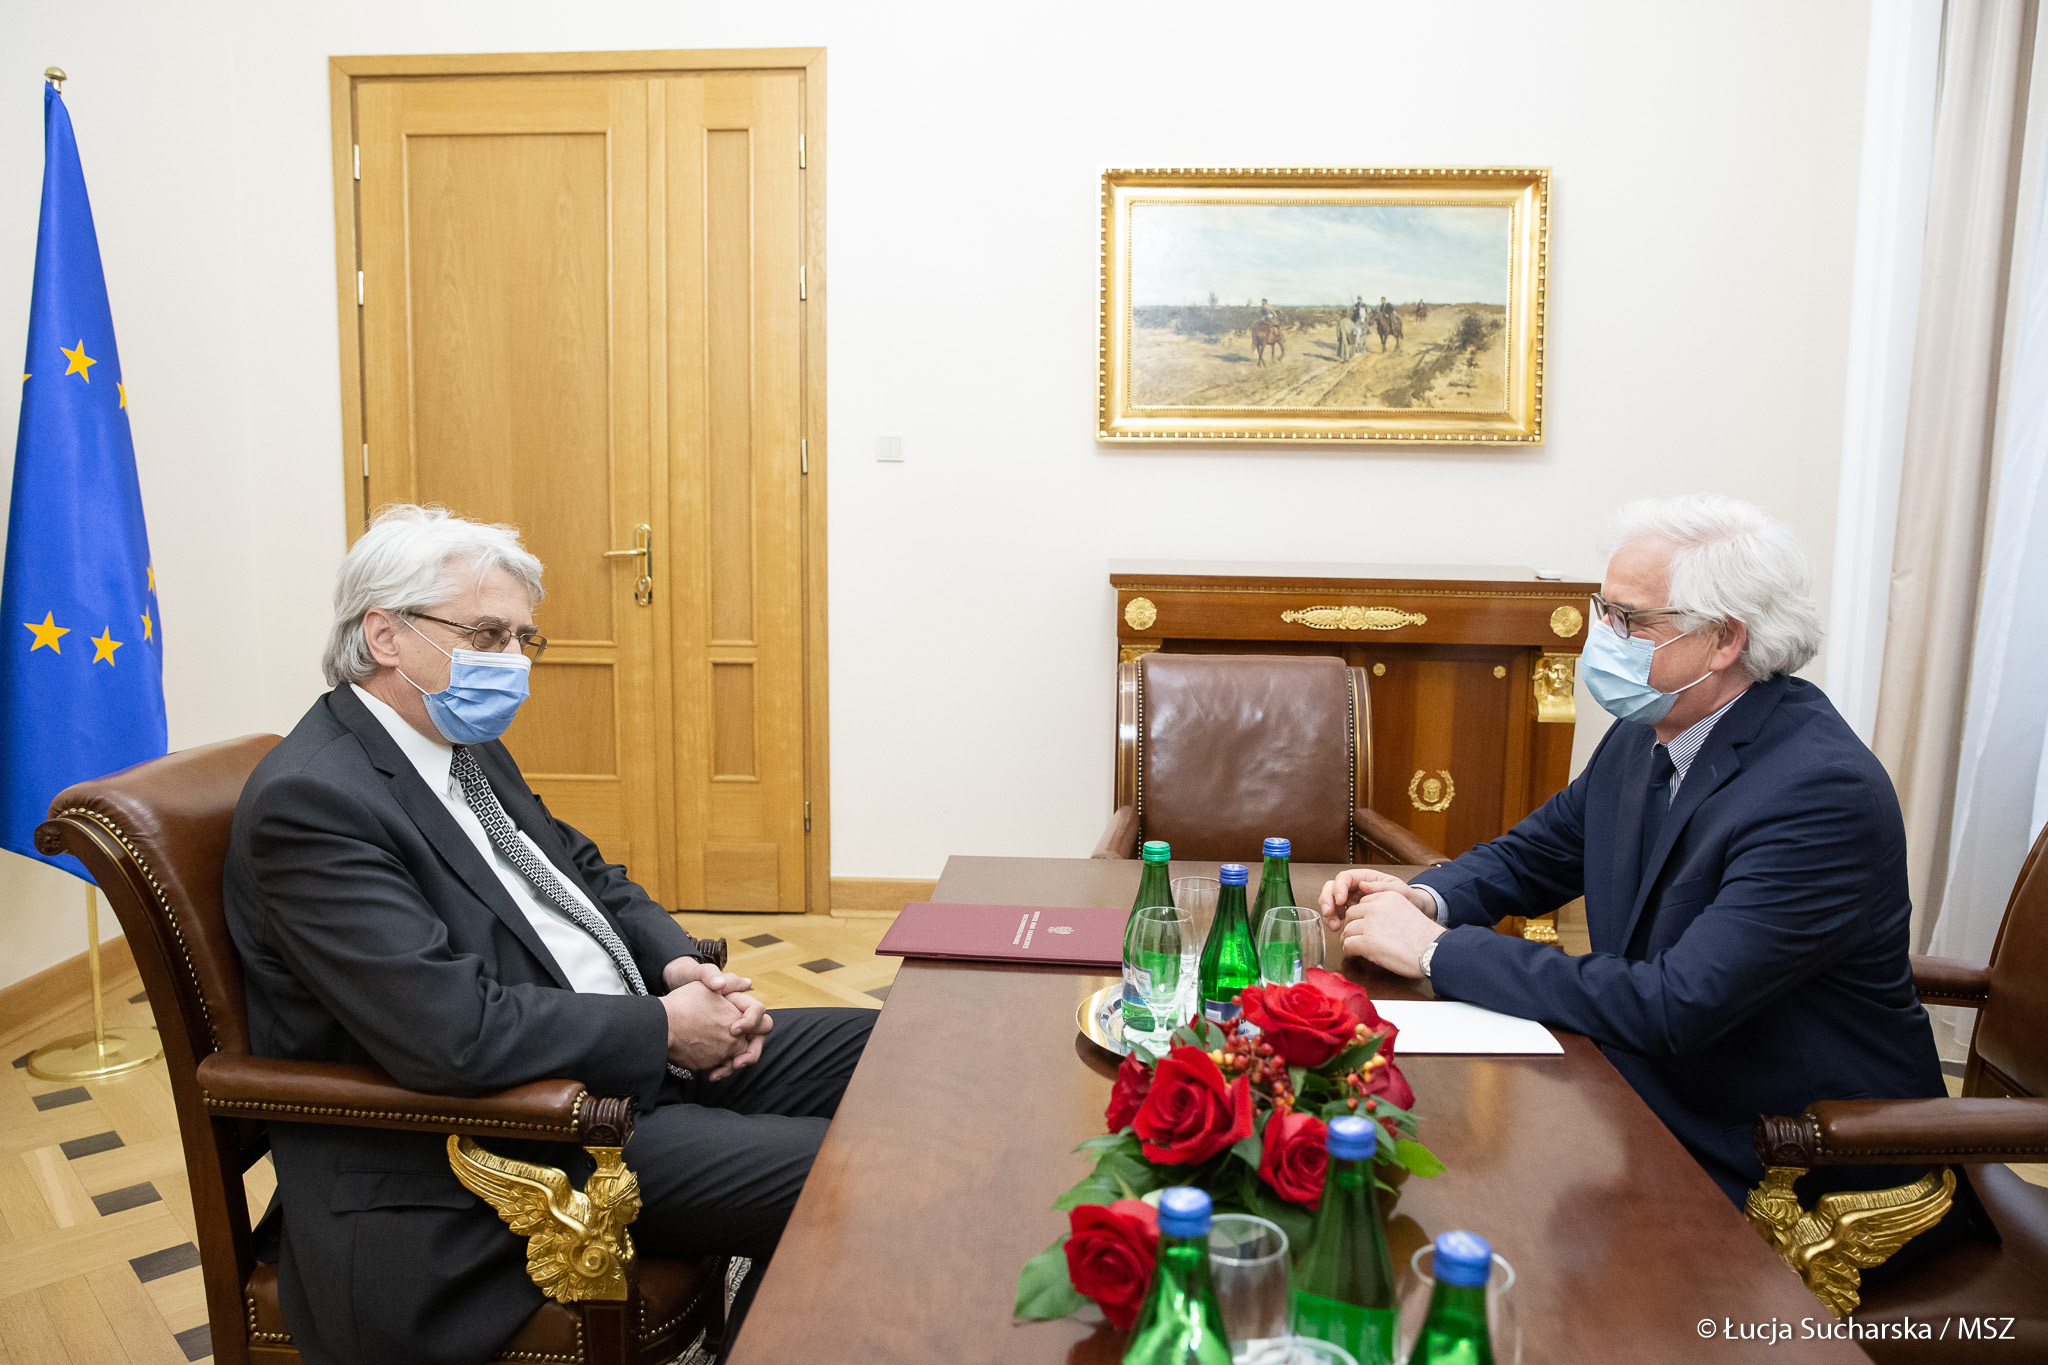 WI Daily News – Polish Foreign Minister met with President of the Polish National Commission for UNESCO